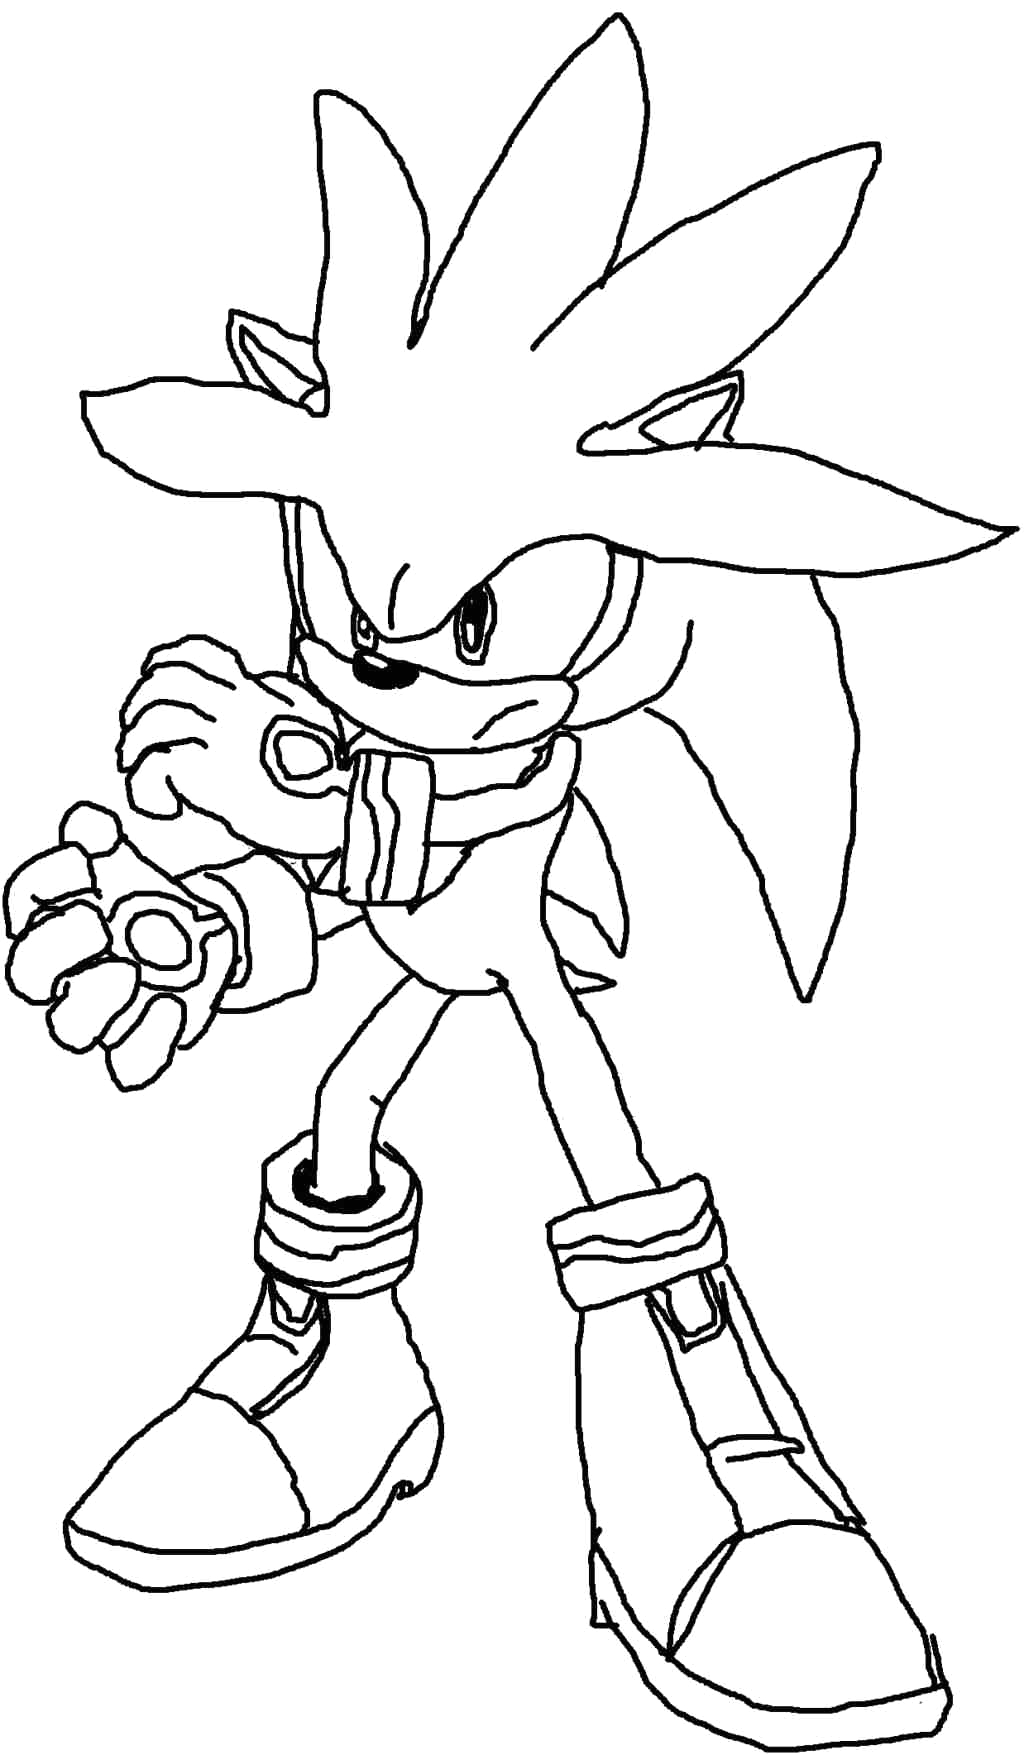 Silver the Hedgehog Coloring Pages to Print Silver the Hedgehog Coloring Pages at Getcolorings